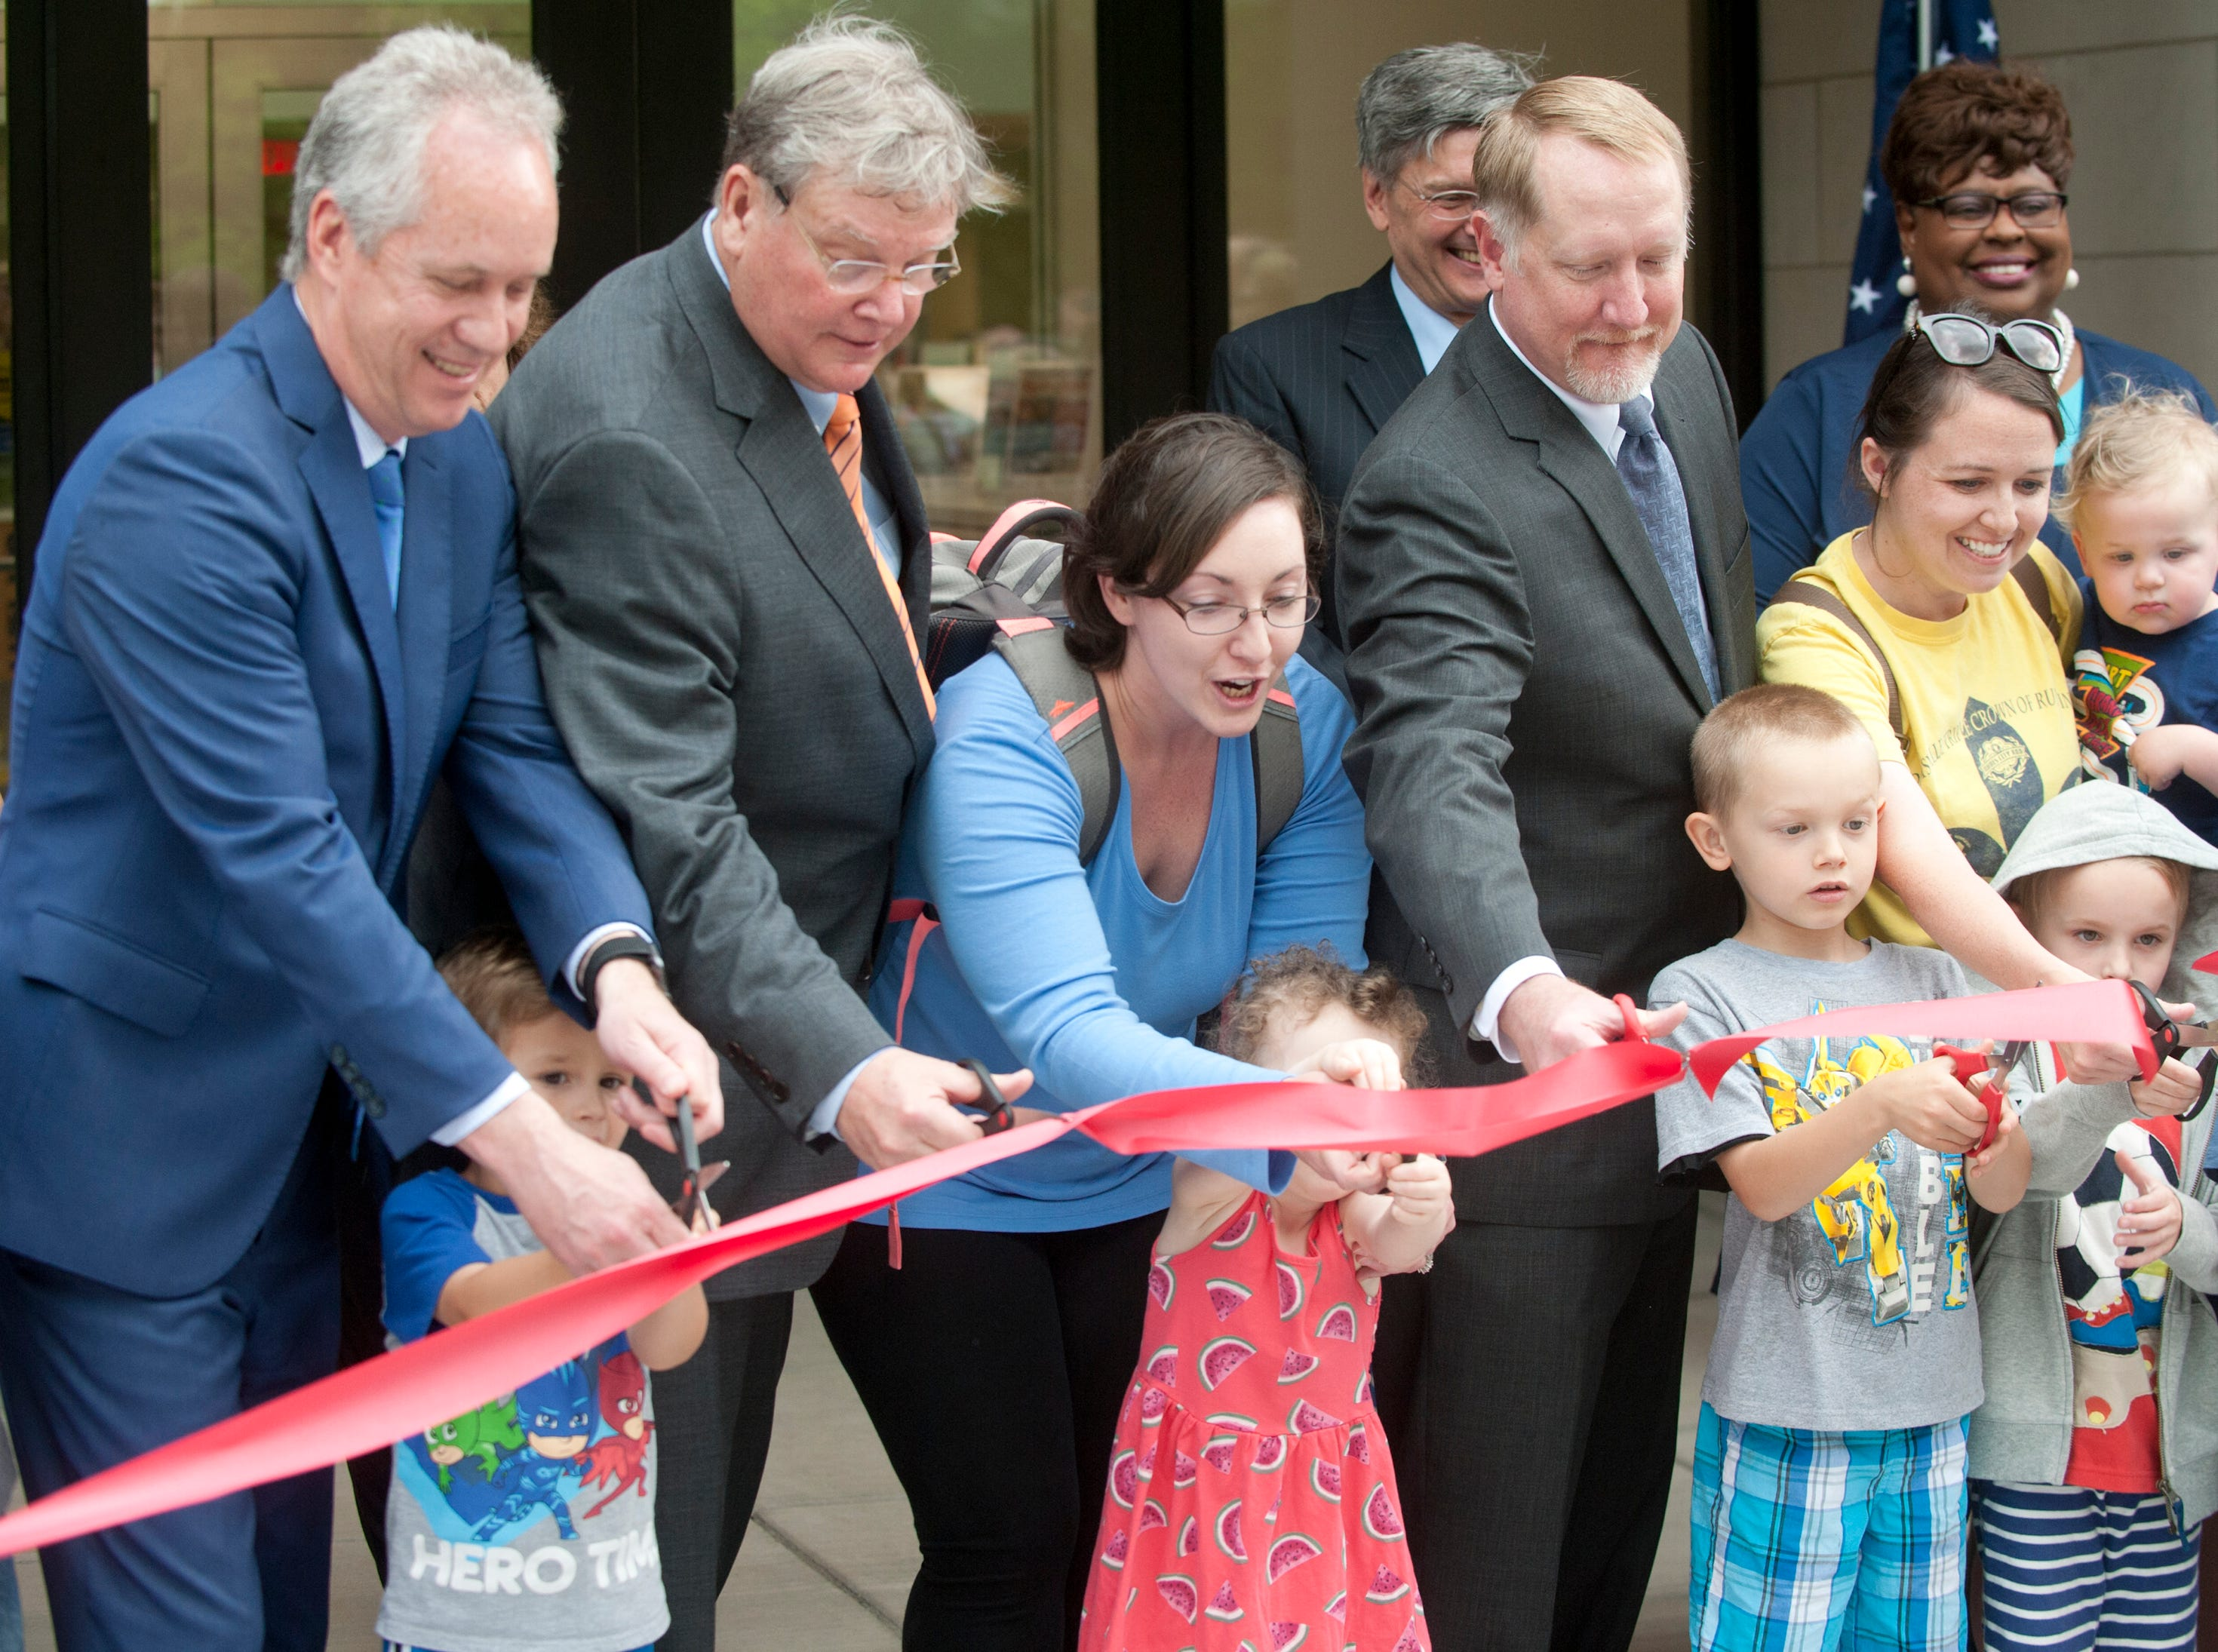 Louisville Metro Mayor Greg Fischer, top left, St. Matthews Mayor Rick Tonini, top second from left, and Louisville Free Public Library Executive Director Lee Burchfield, top center right, called on the library's young readers to come up and help cut the dedication ribbon of the newly expanded library. May 9, 2019